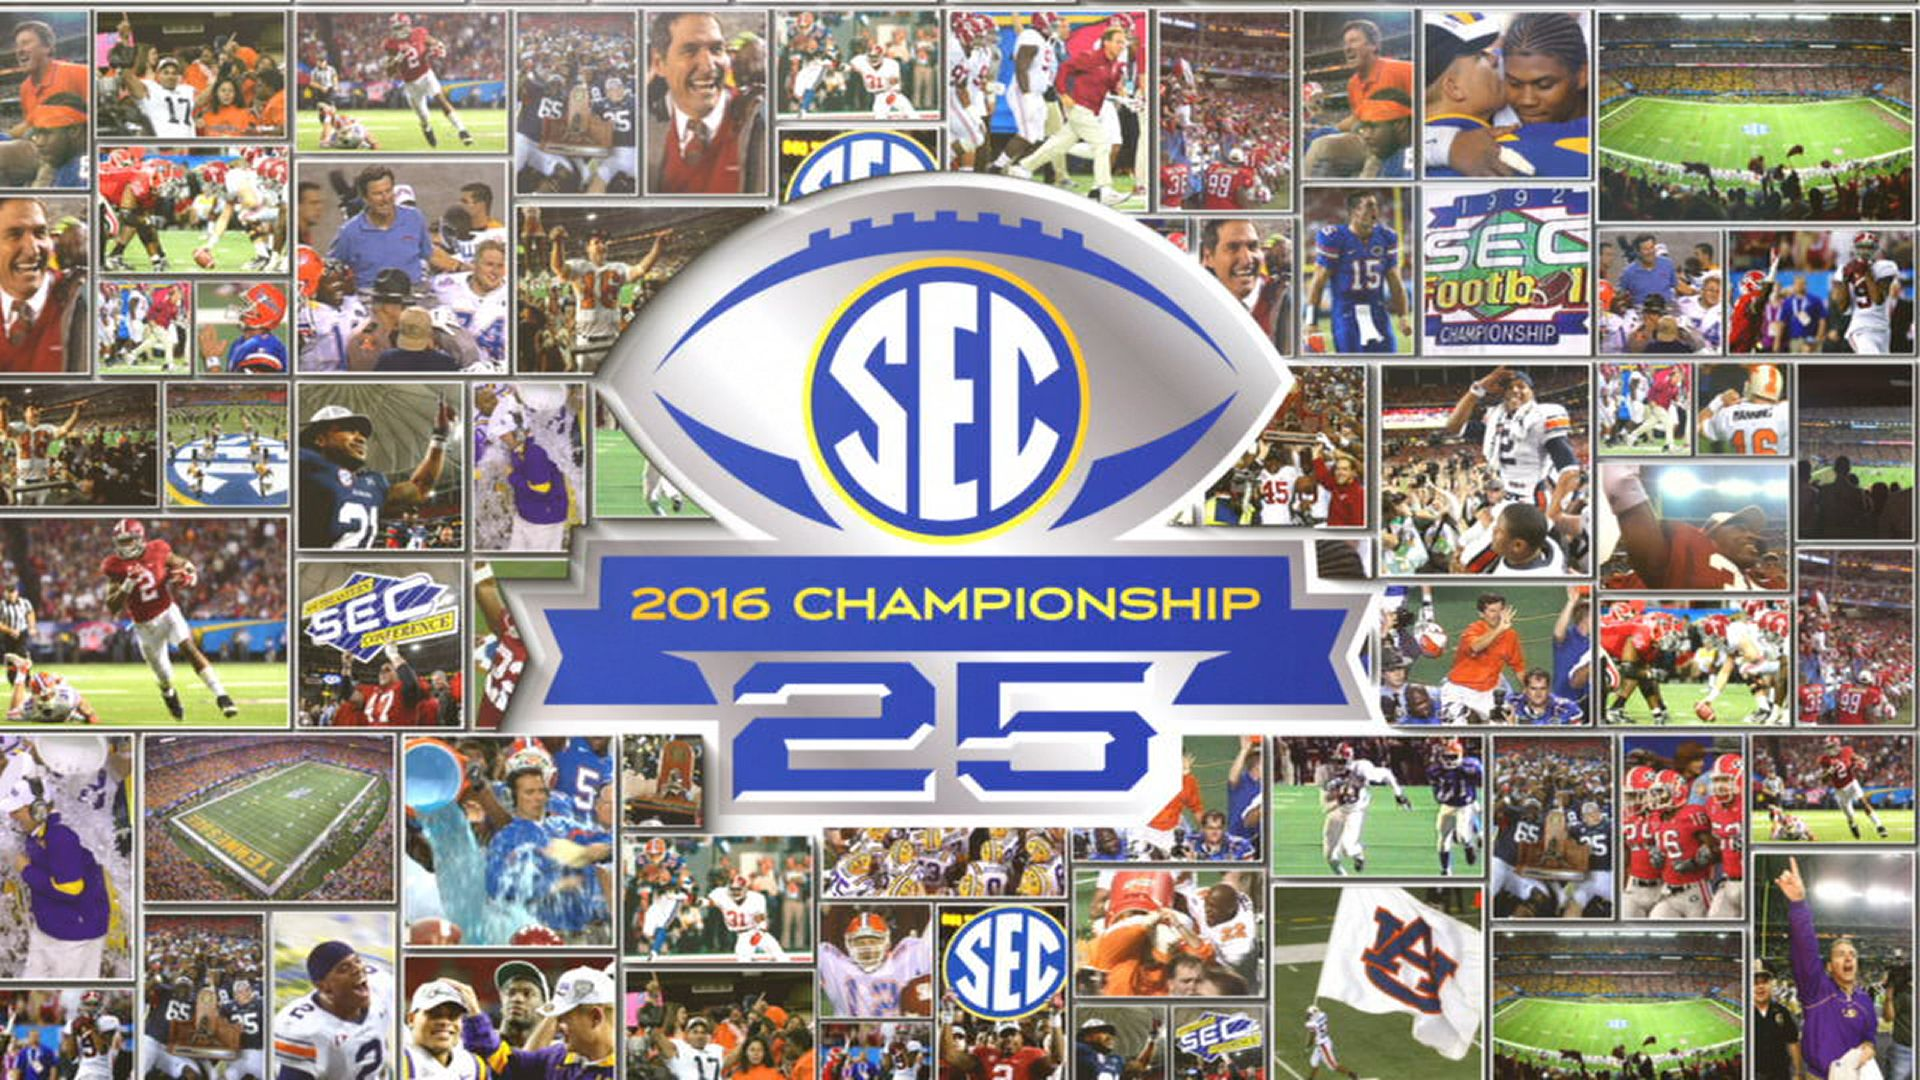 Celebrating 25 years of the SEC Championship